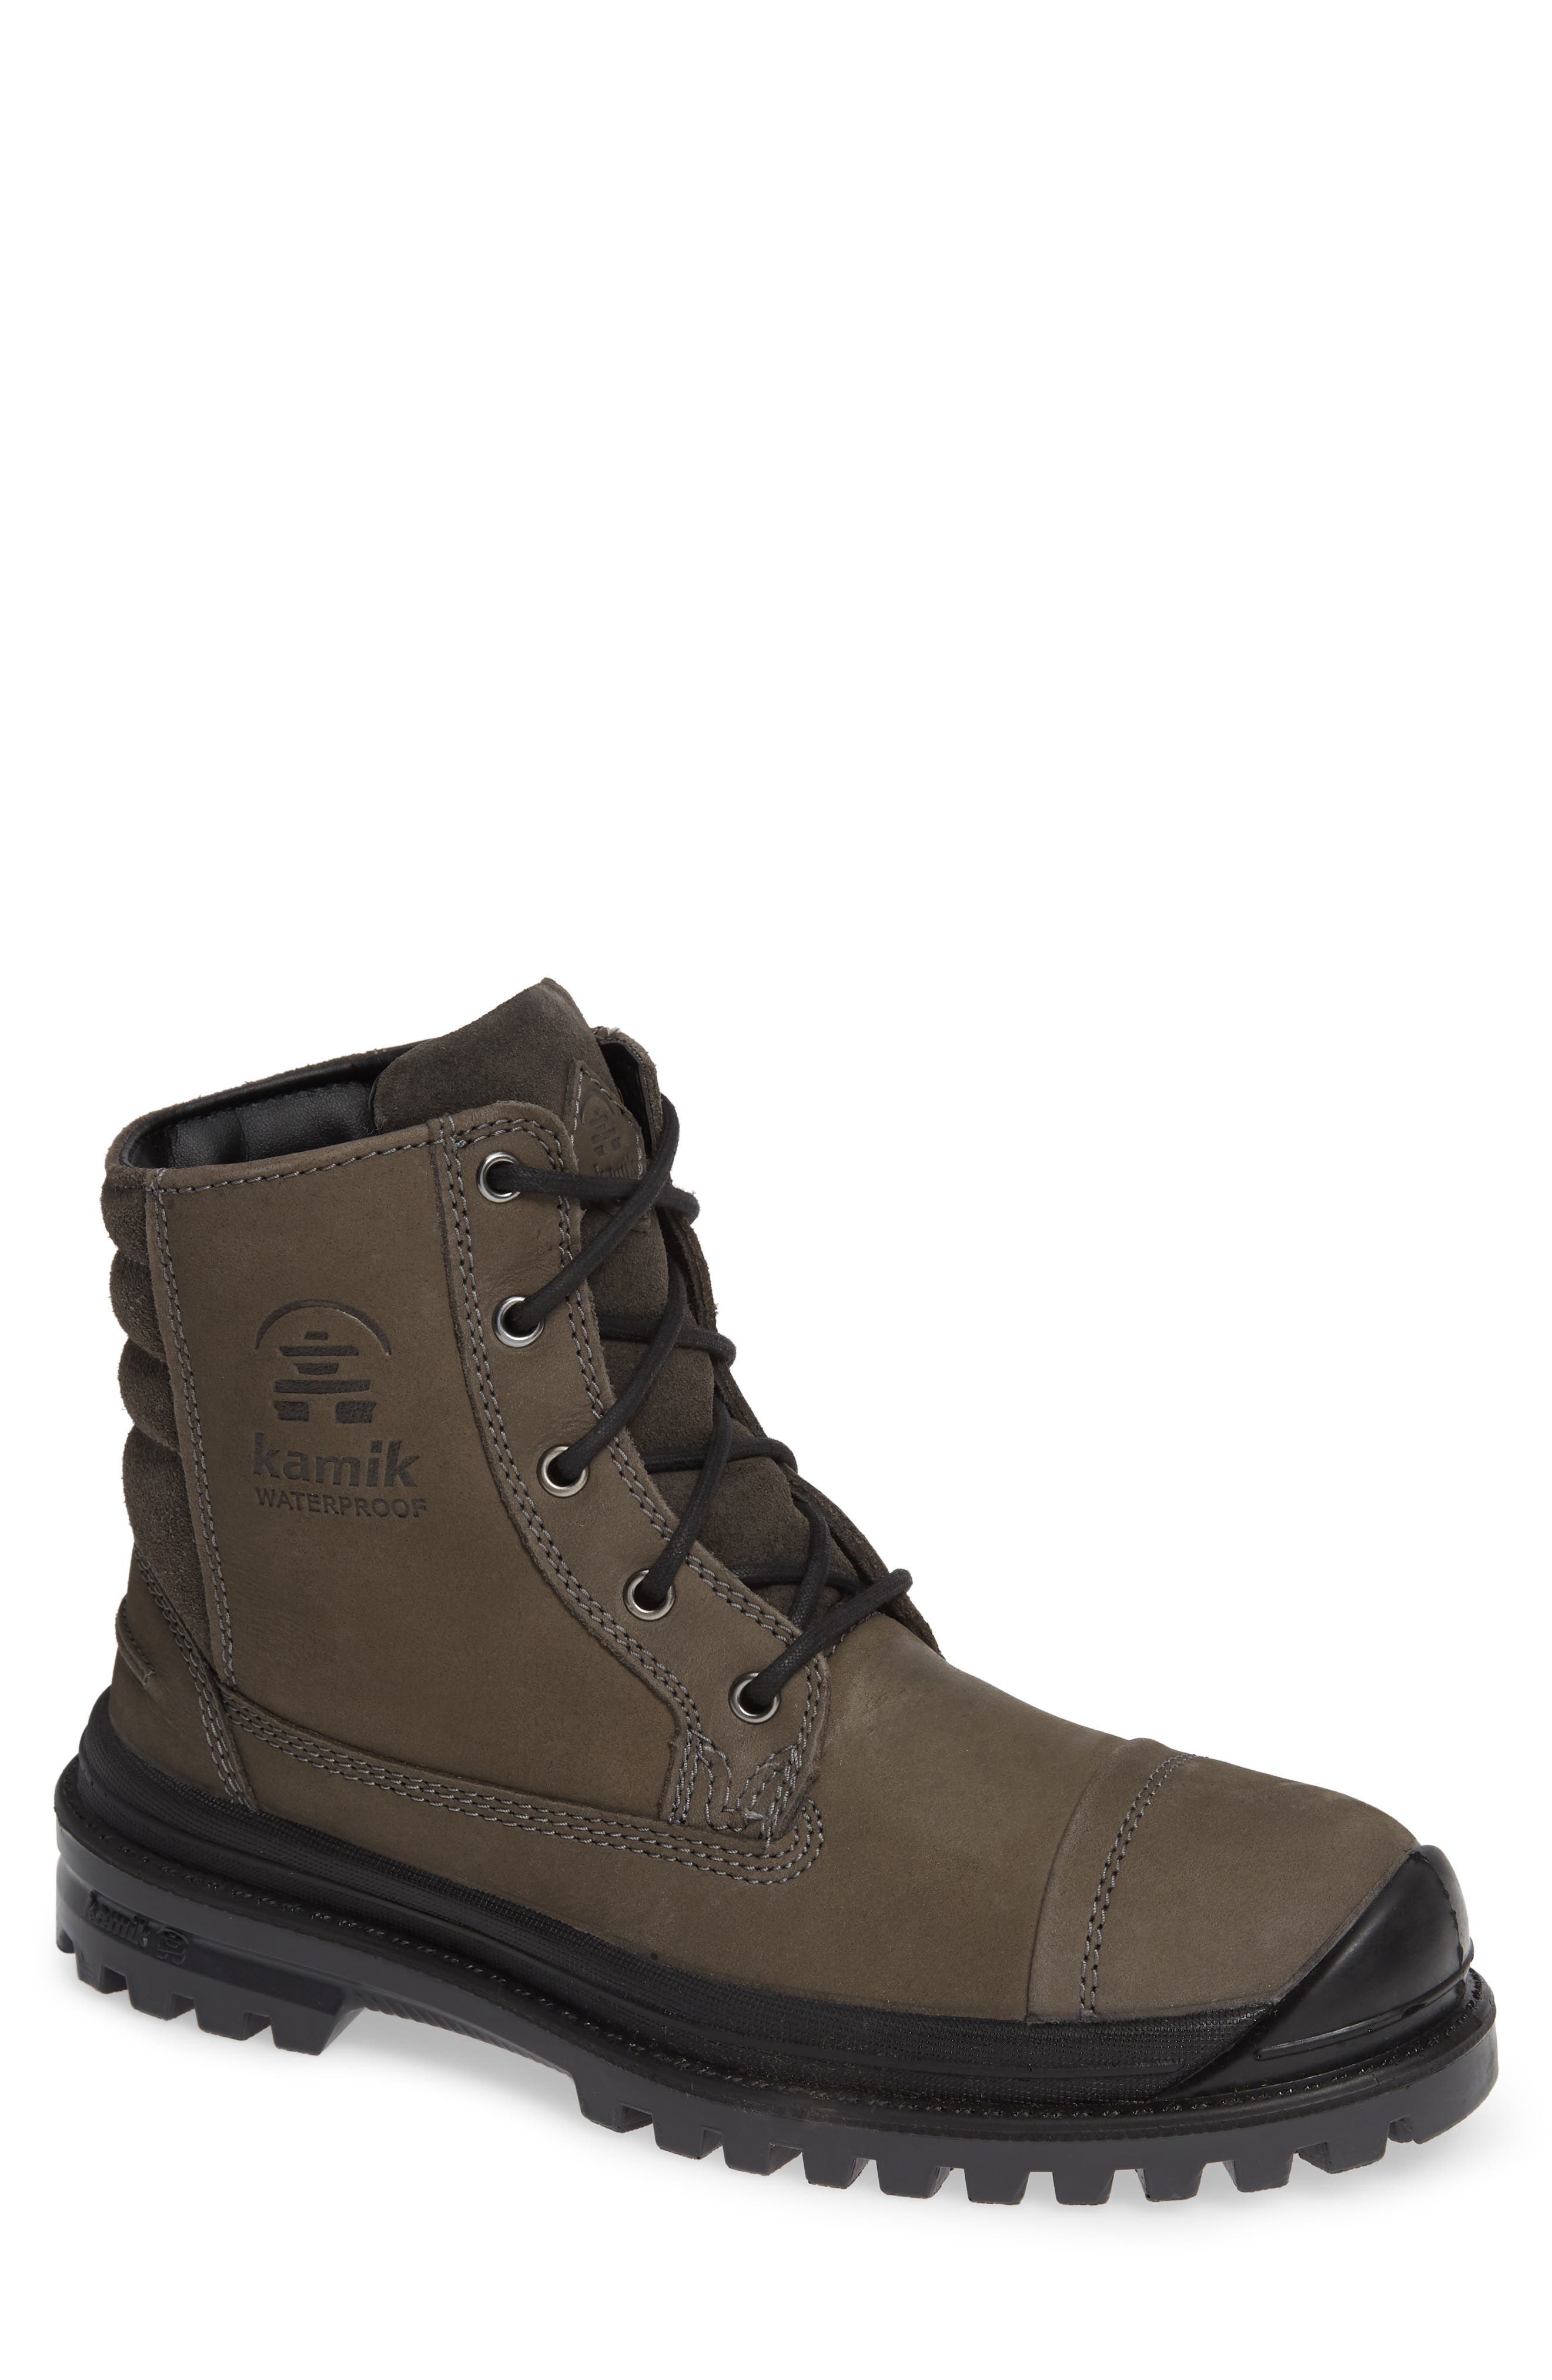 Griffon Waterproof Boot,                             Main thumbnail 1, color,                             CHARCOAL LEATHER